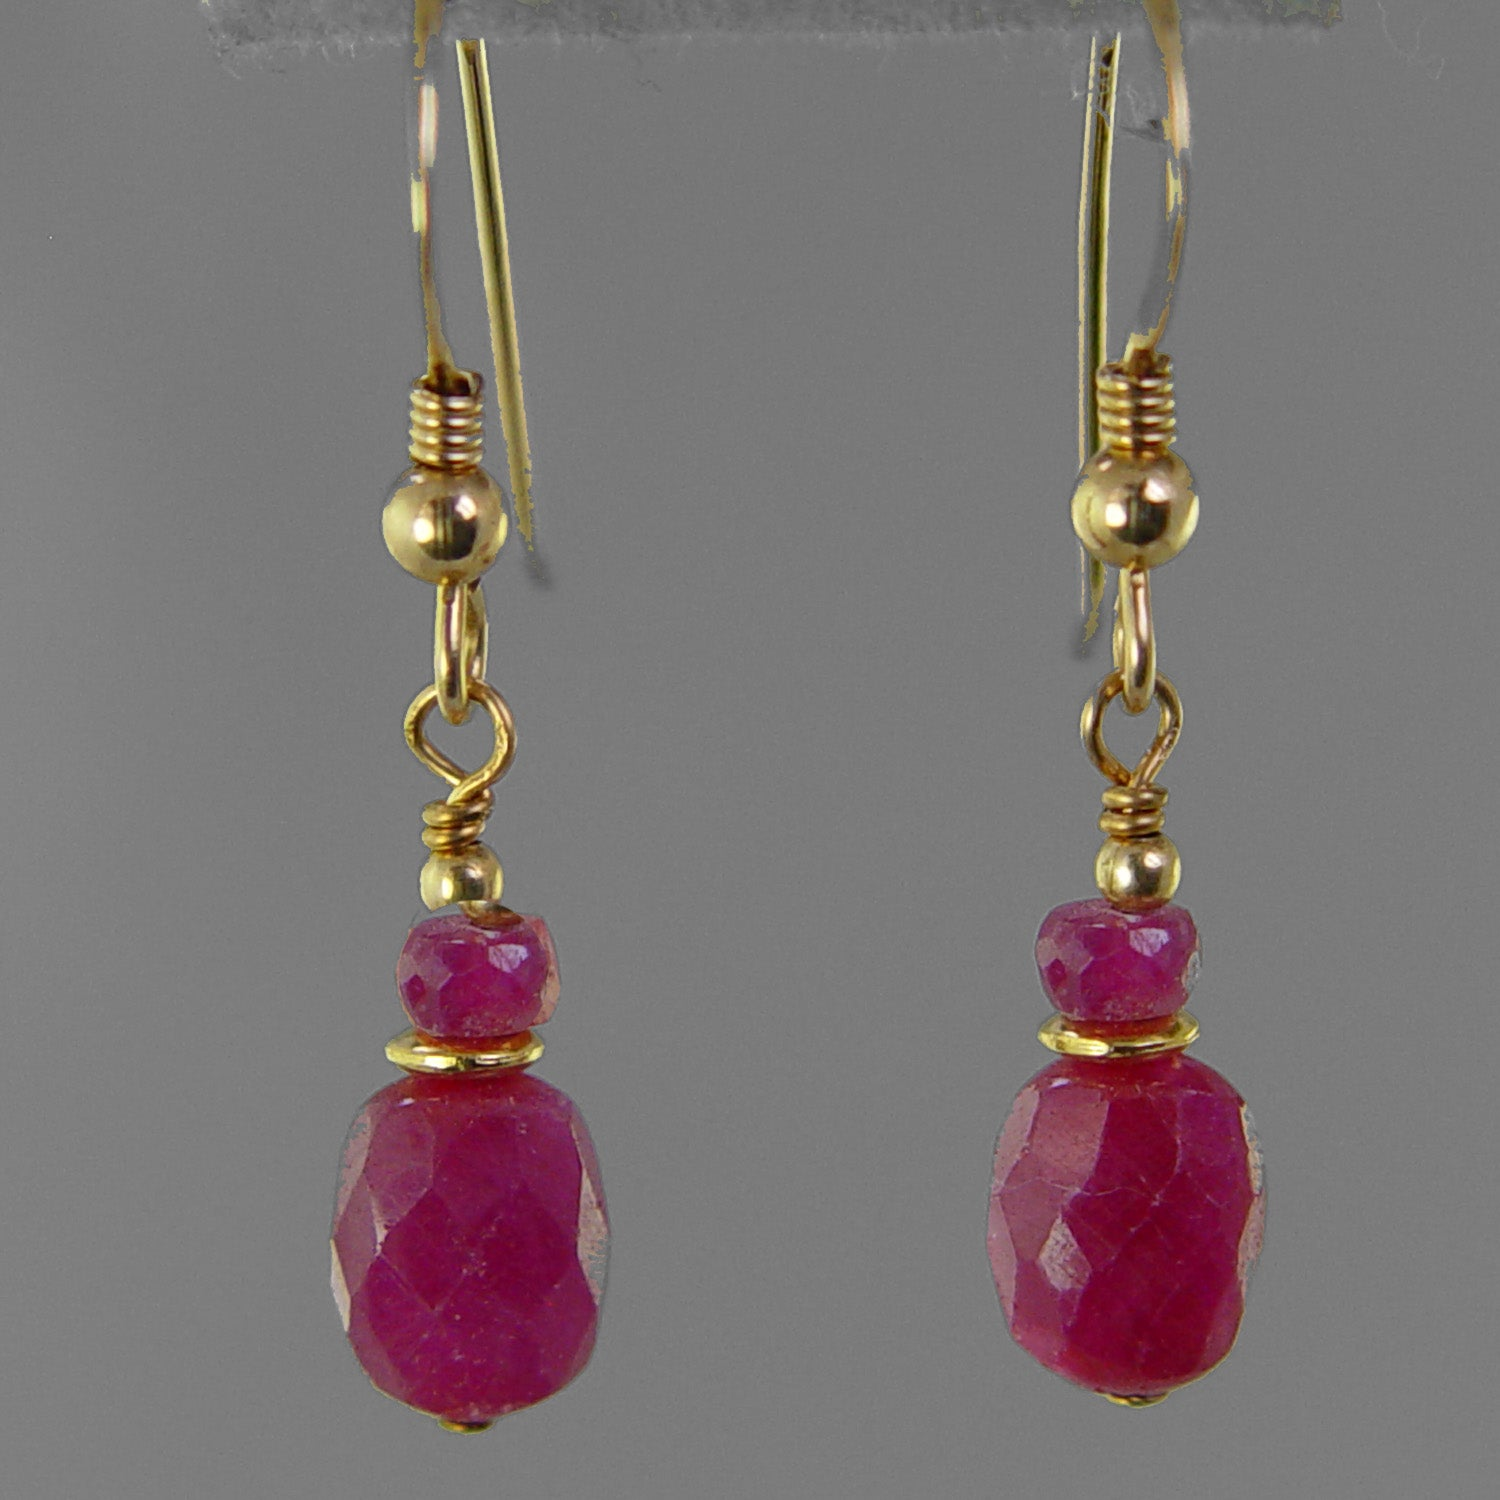 Vedic Earrings